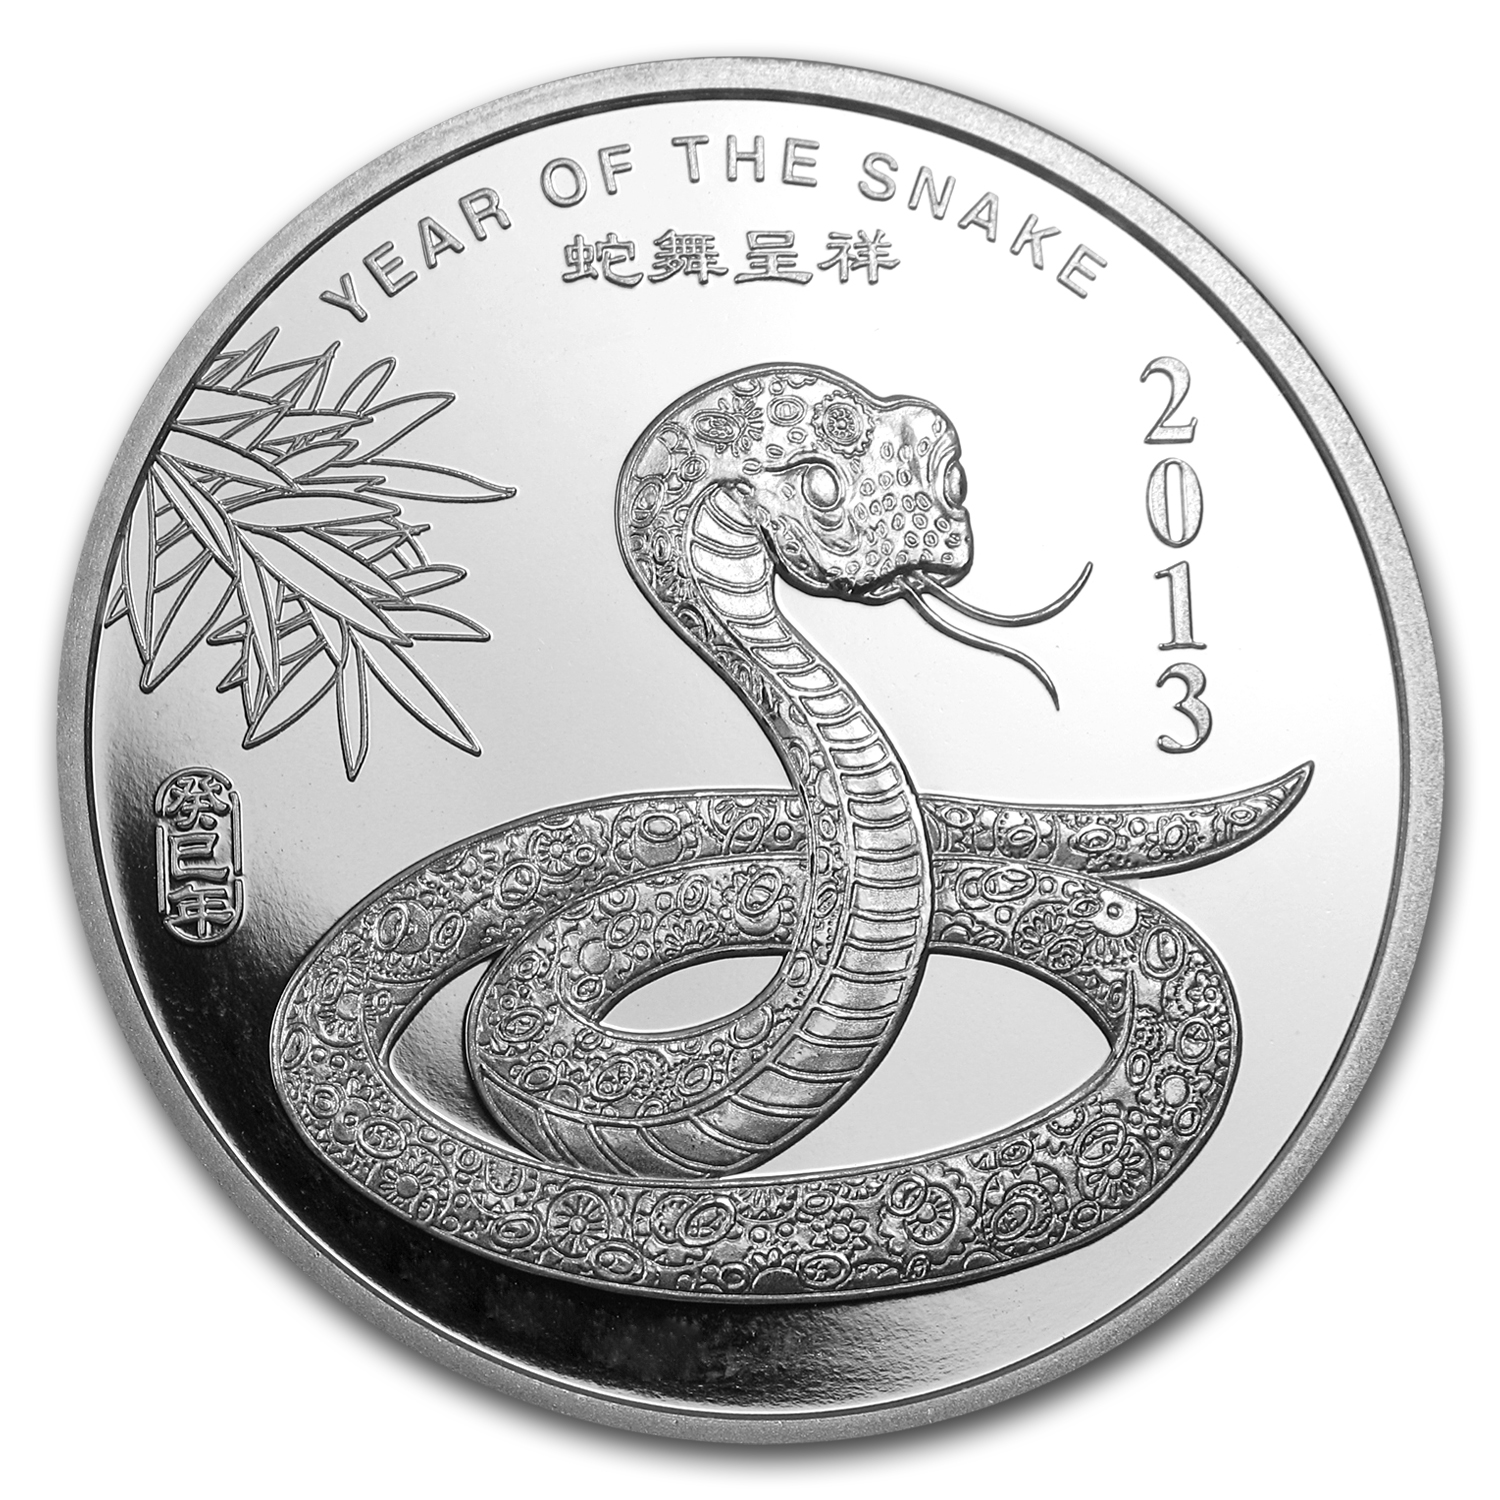 1 oz Silver Rounds - APMEX (2013 Year of the Snake)